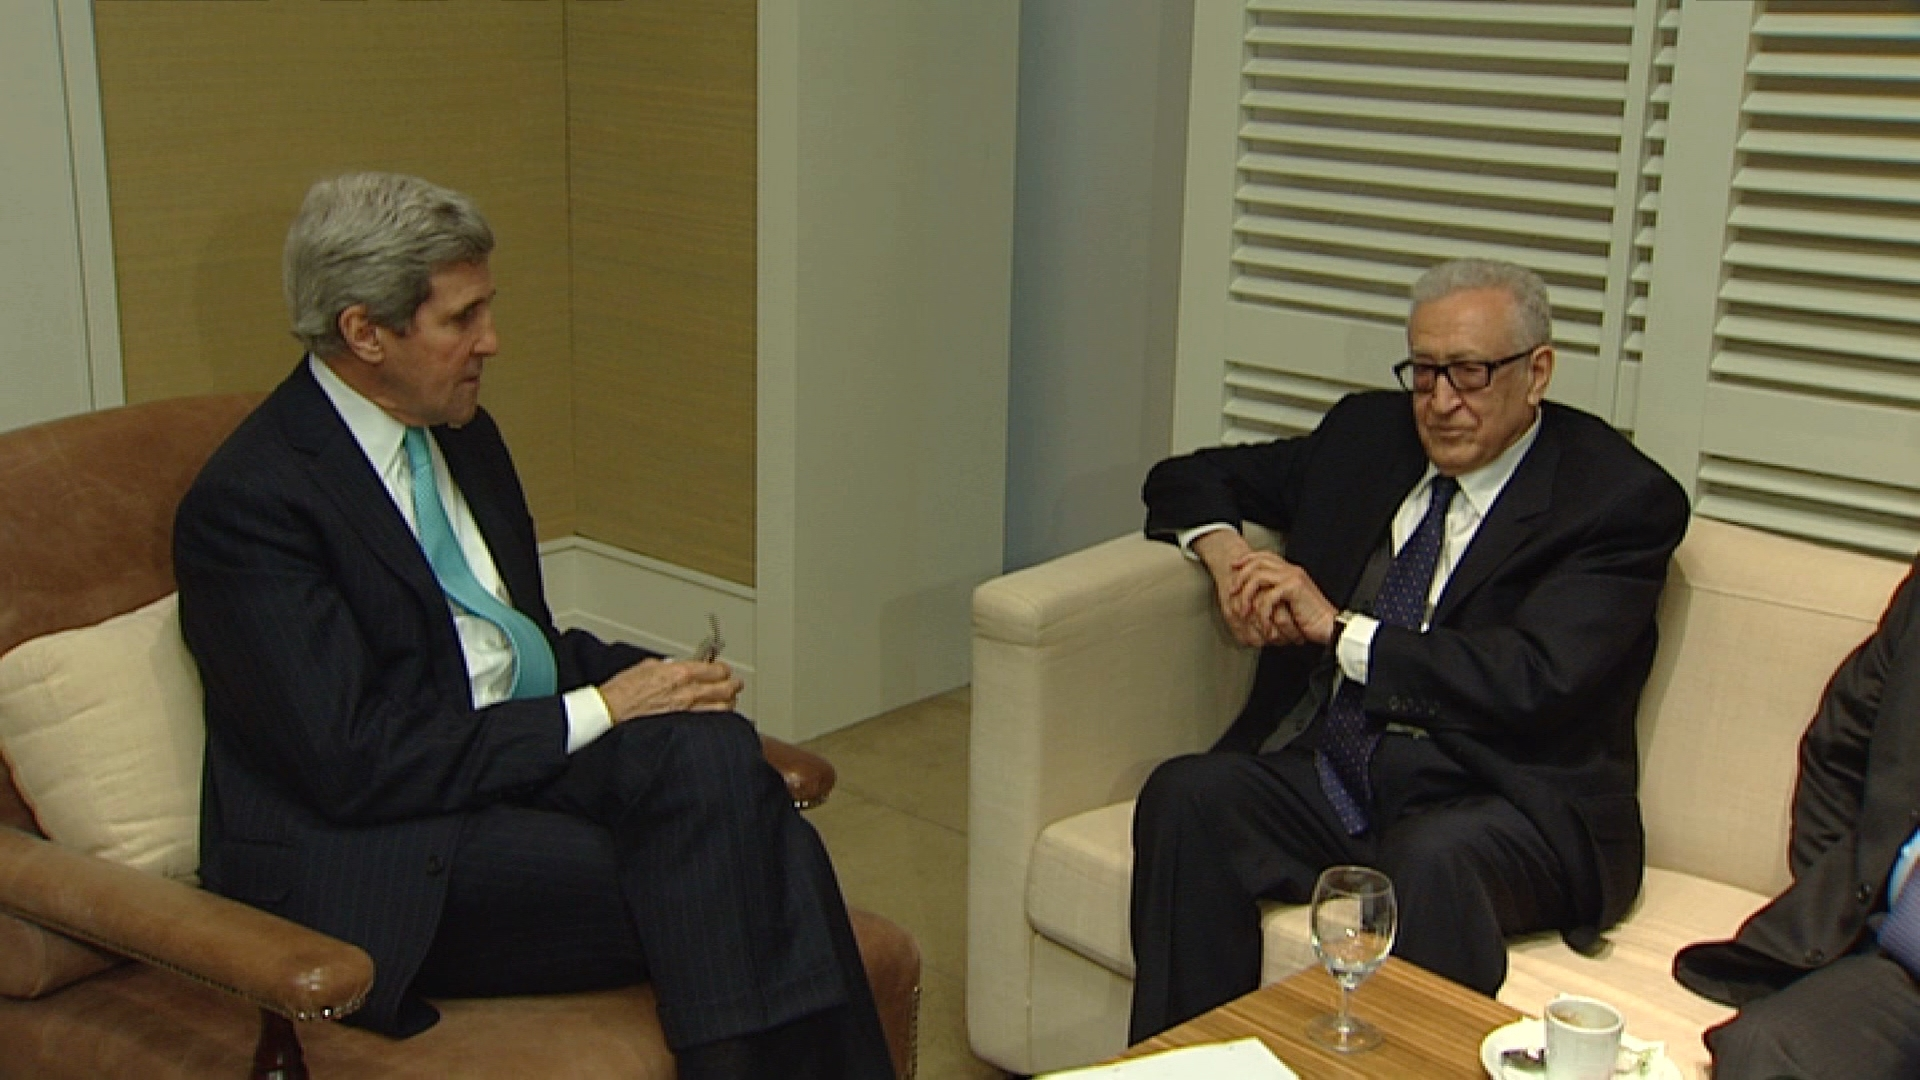 Selected frame from video story GENEVA / BRAHIMI KERRY